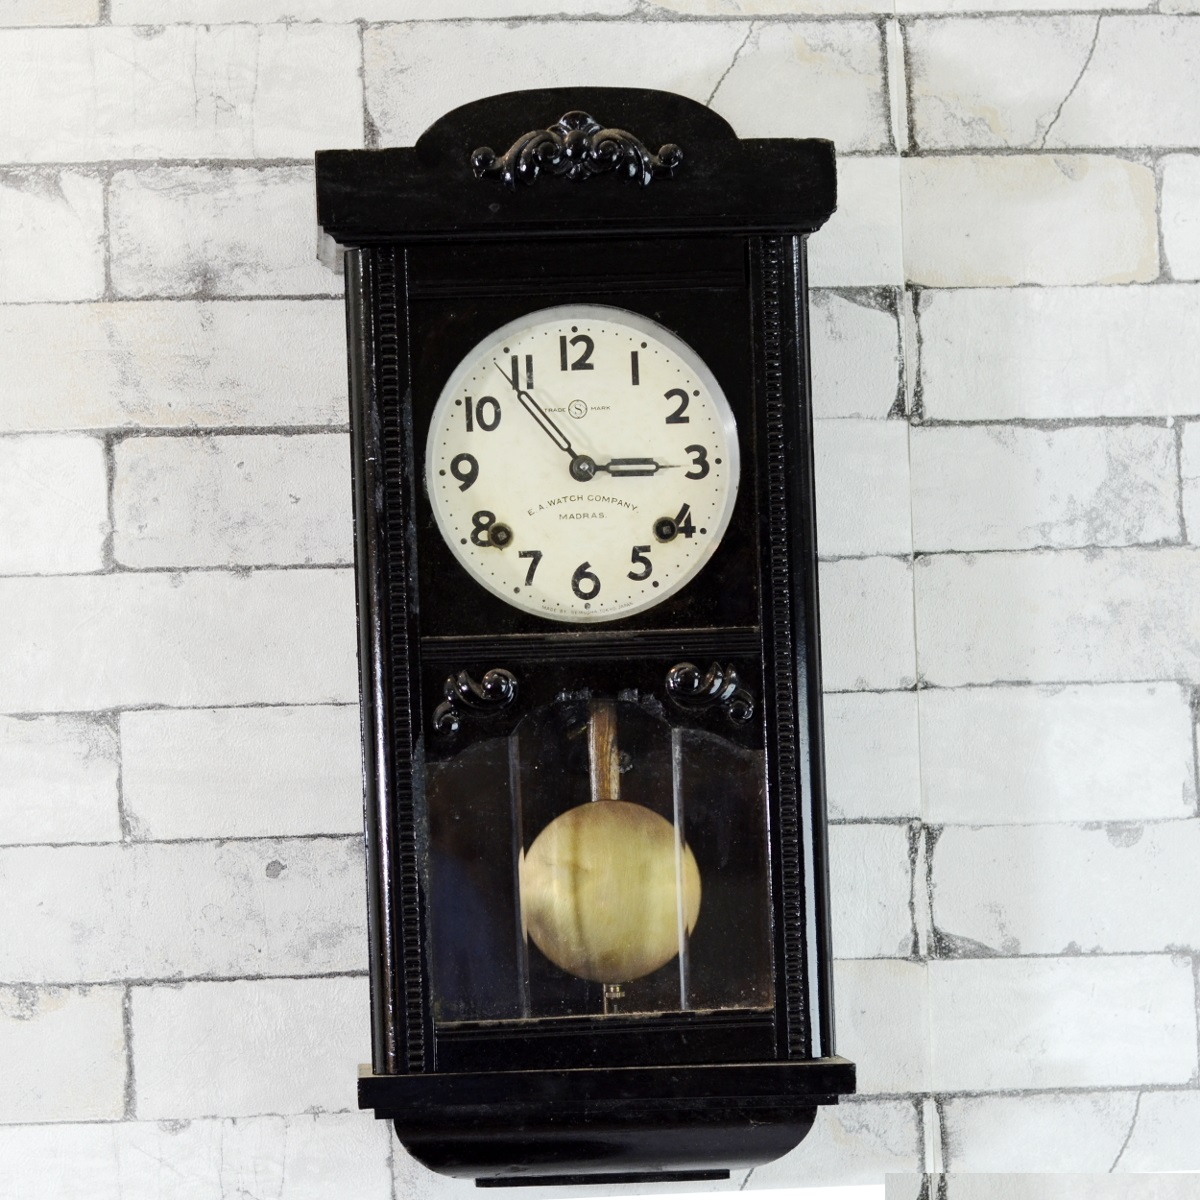 Vintage pendulum wall clock image collections home wall seikosha mini tower 1940 pendulum wall clock antikcart pendulum wall clock sale hover to zoom amipublicfo amipublicfo Choice Image